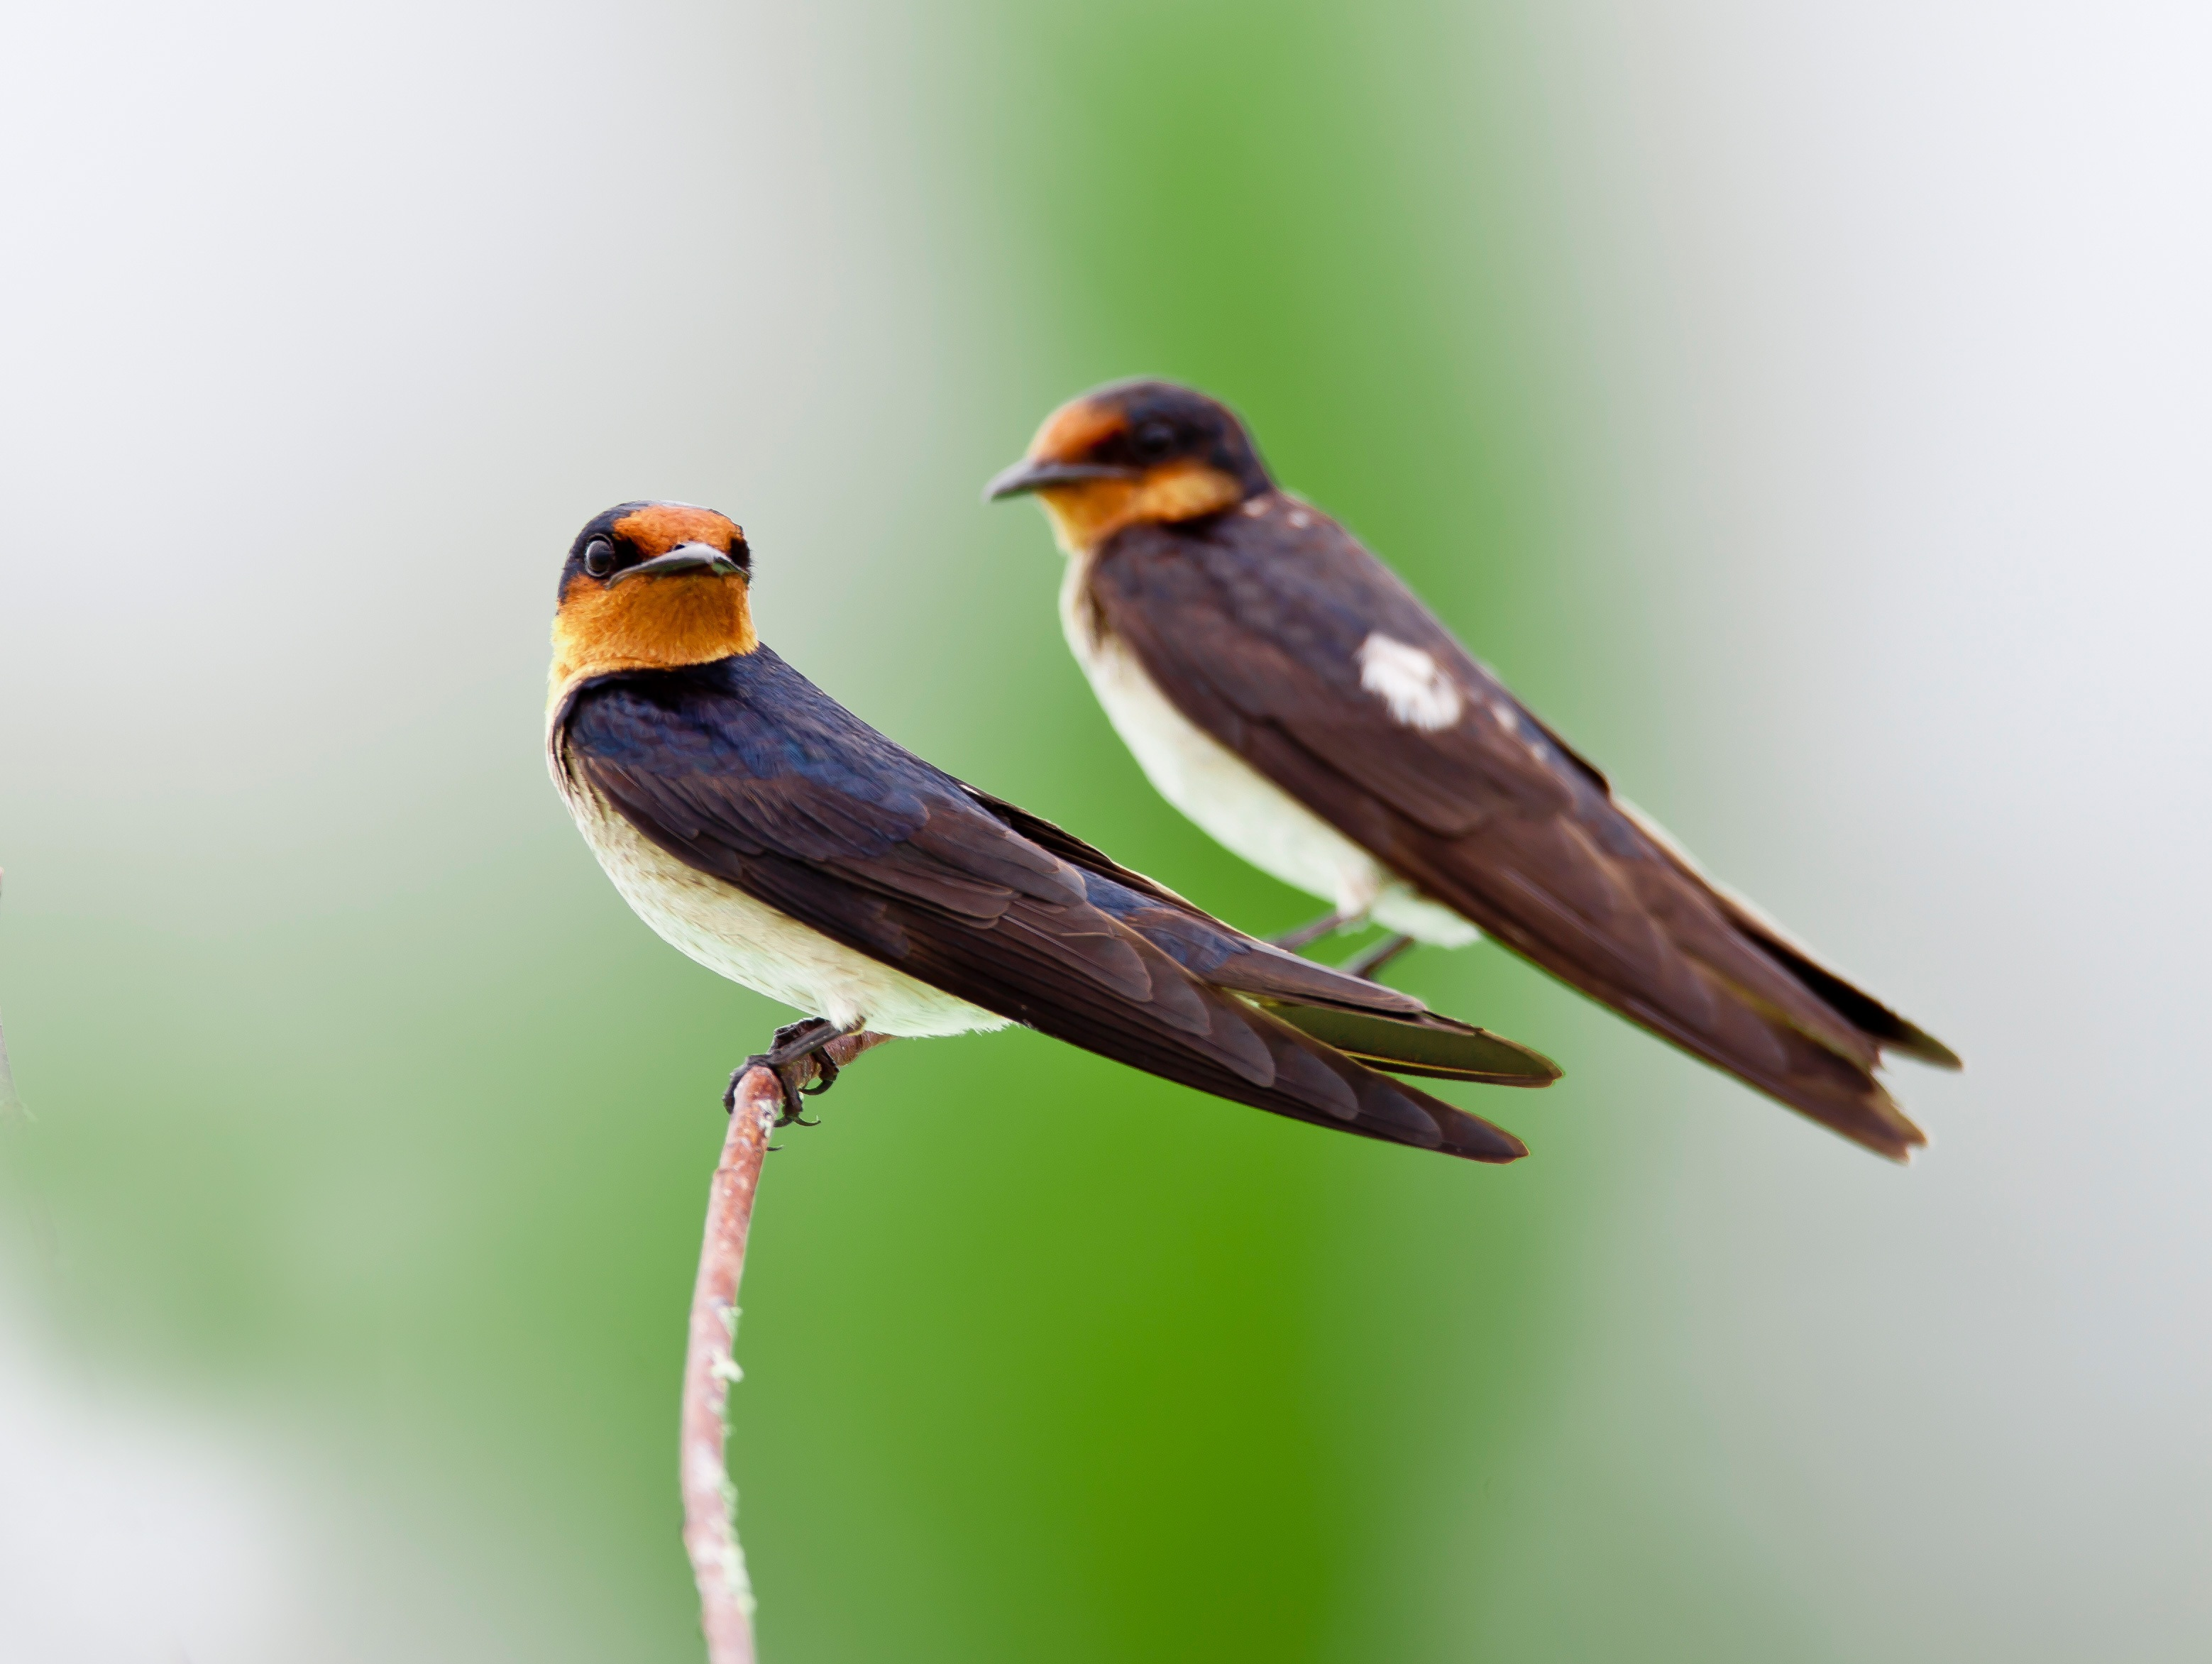 Purple Martin and Swallow